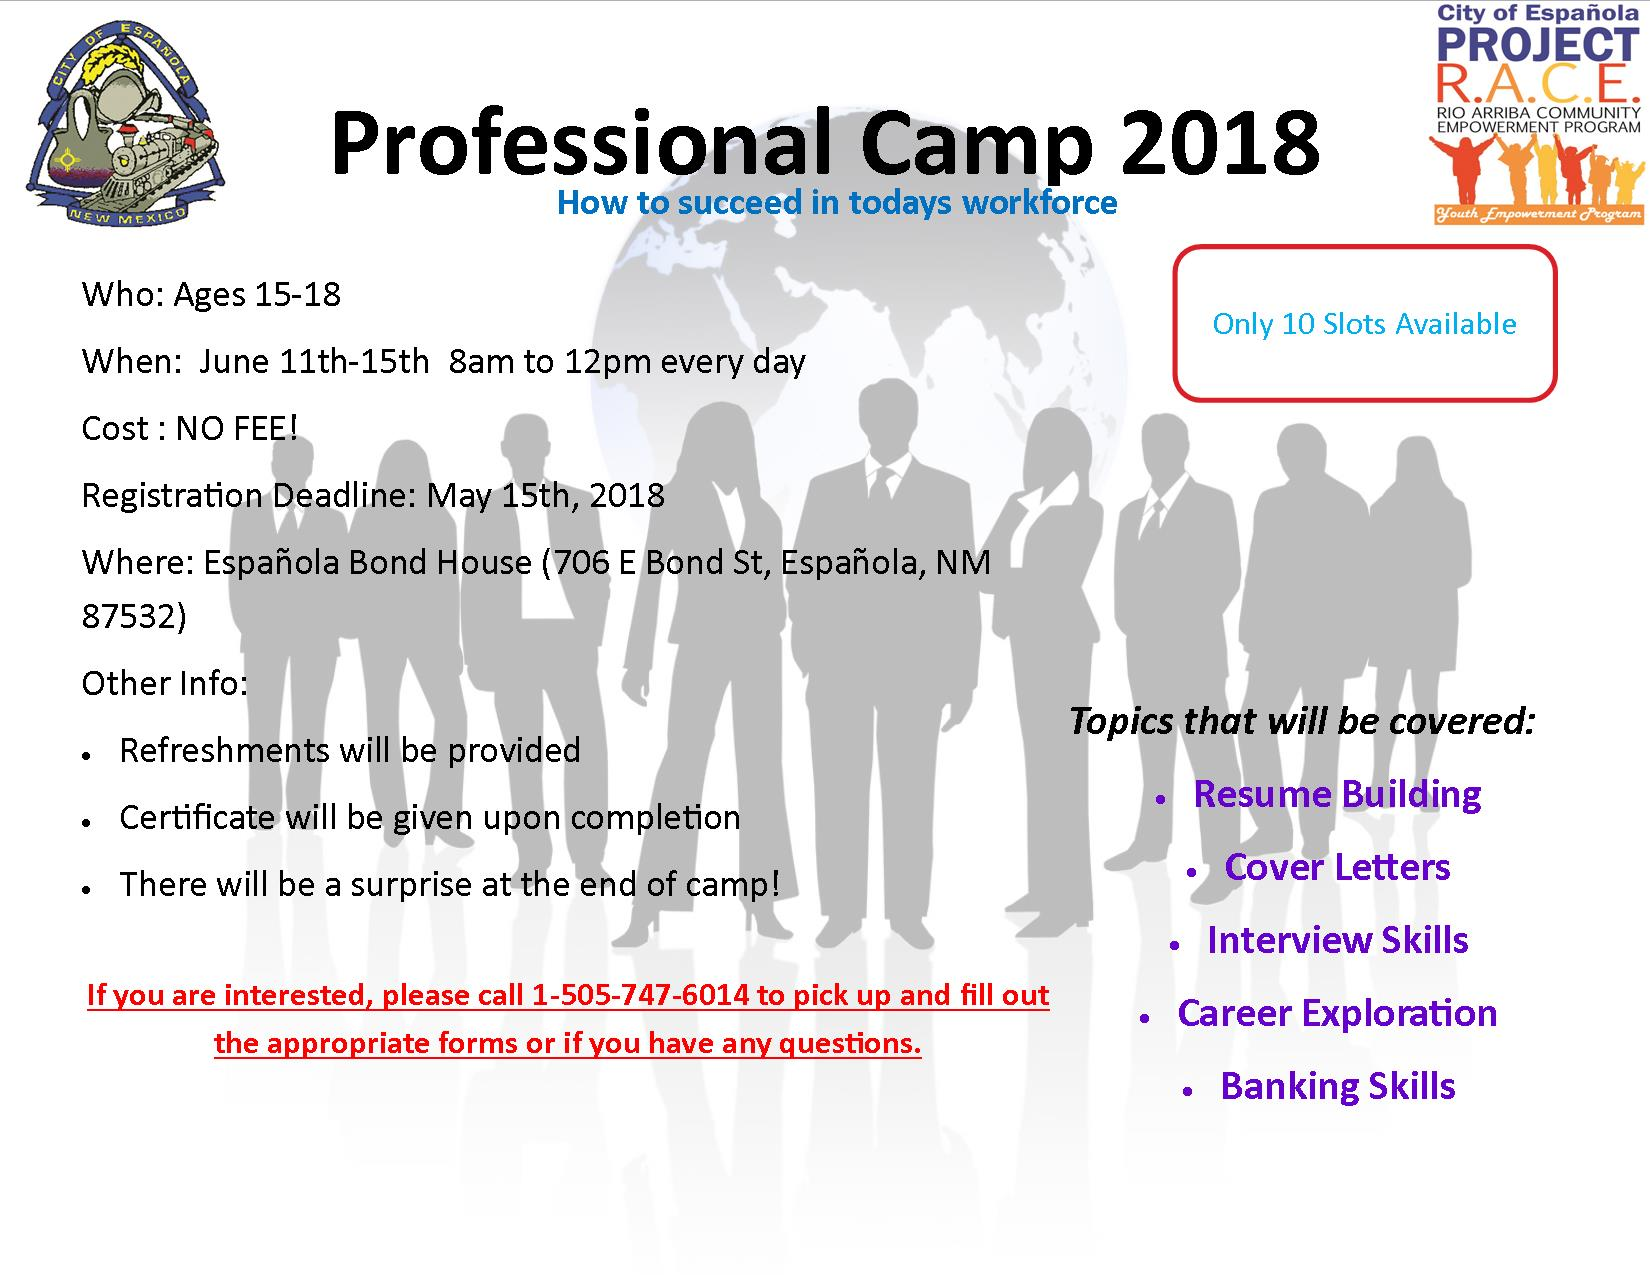 Professional Camp 2018 Flyer